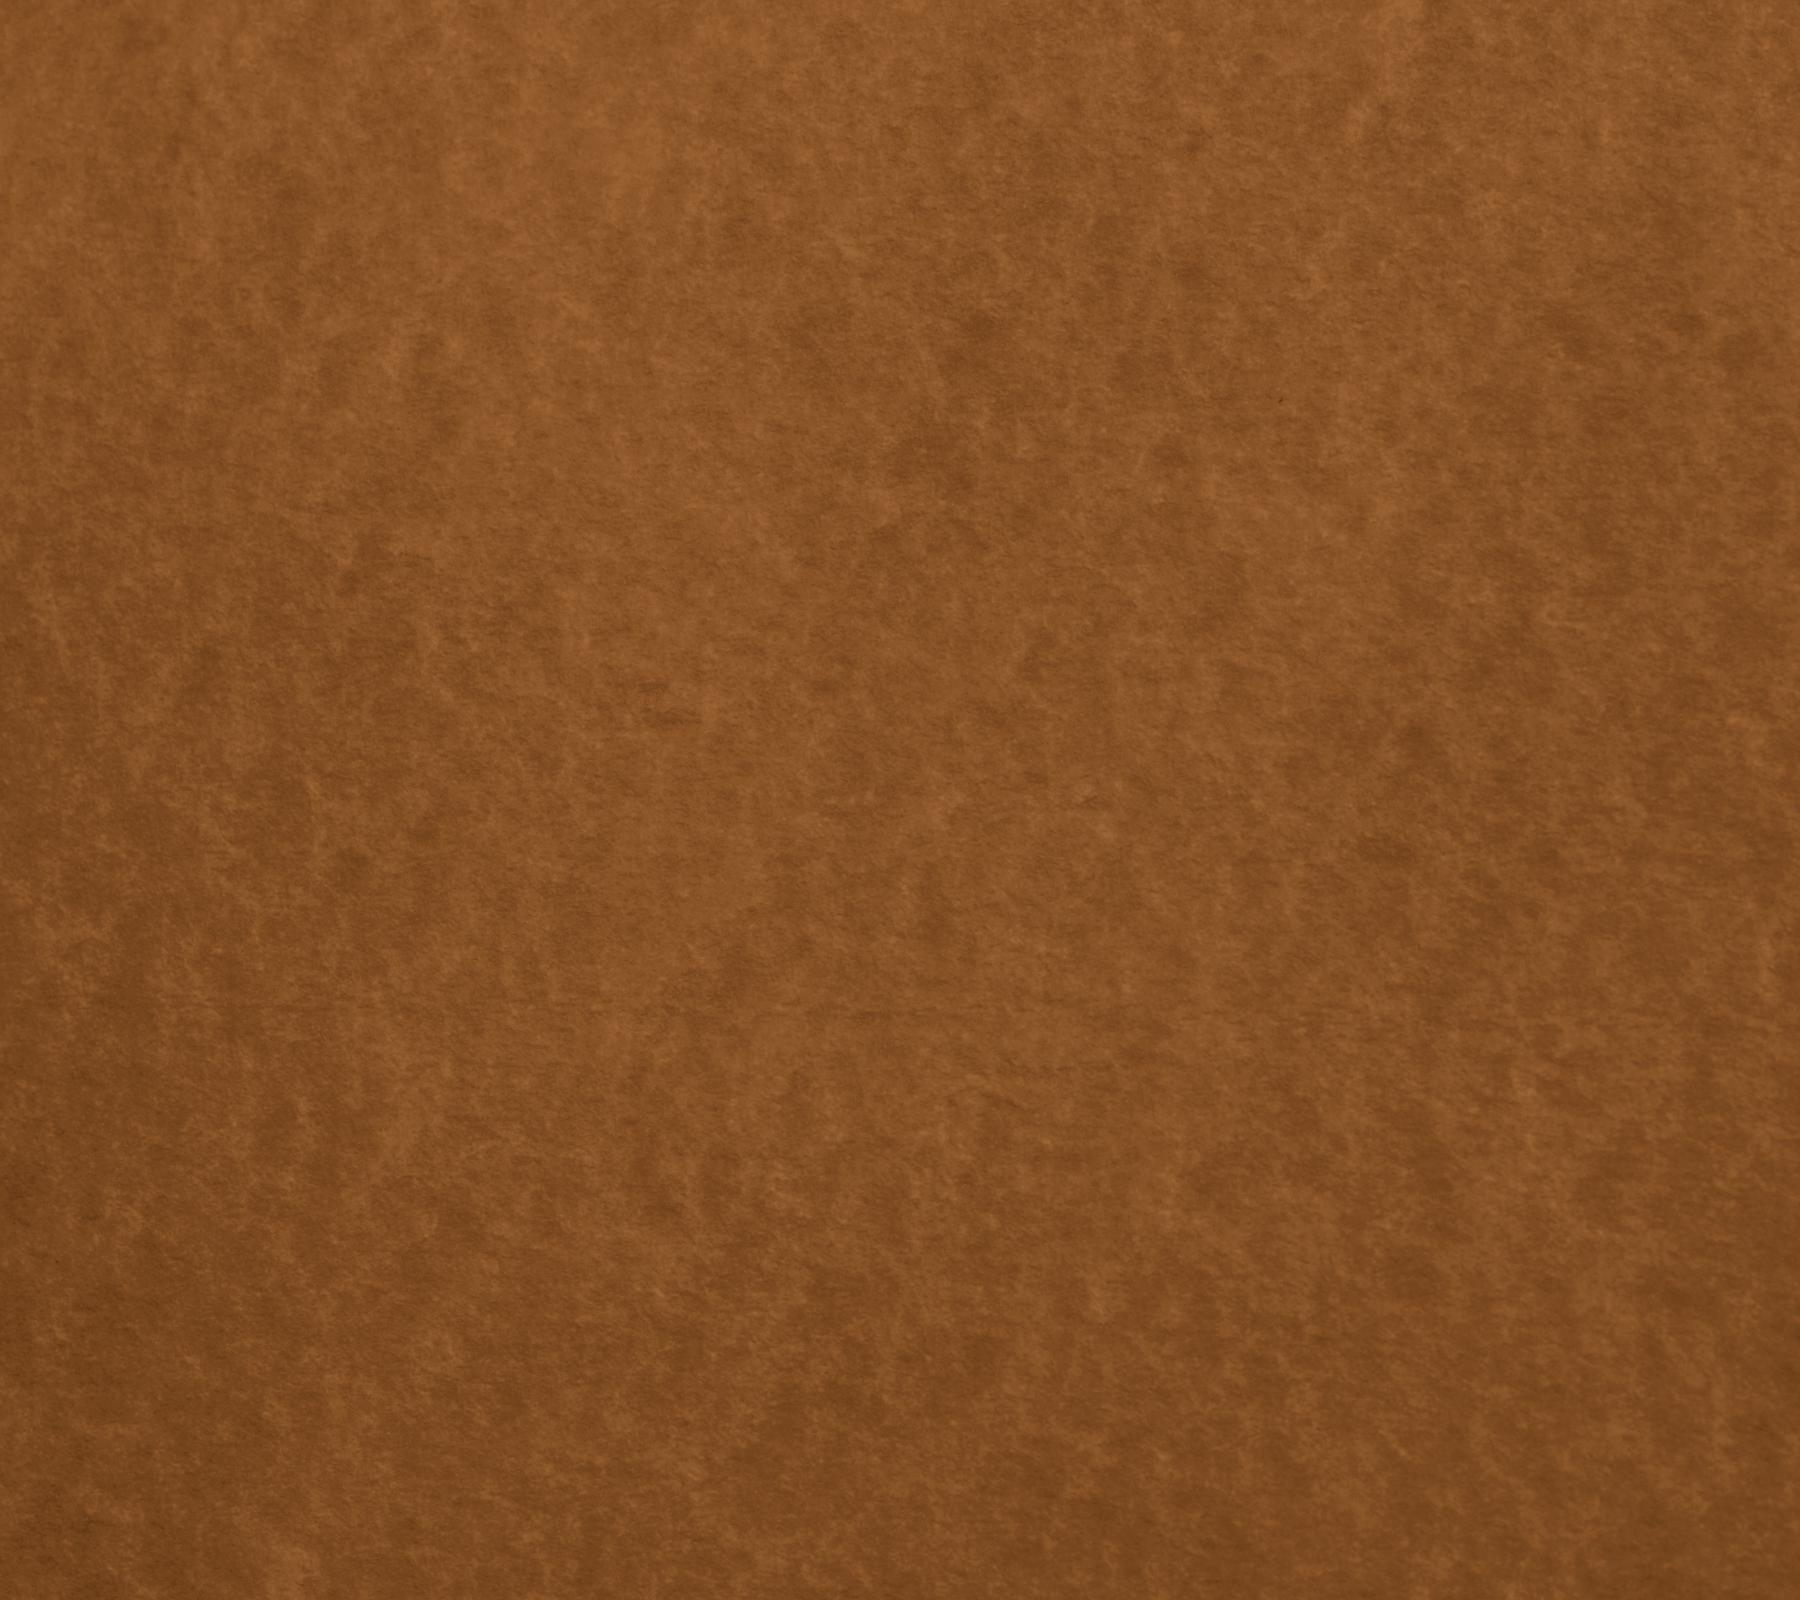 Brown Parchment Paper Background 1800x1600 Background Image Wallpaper 1800x1600